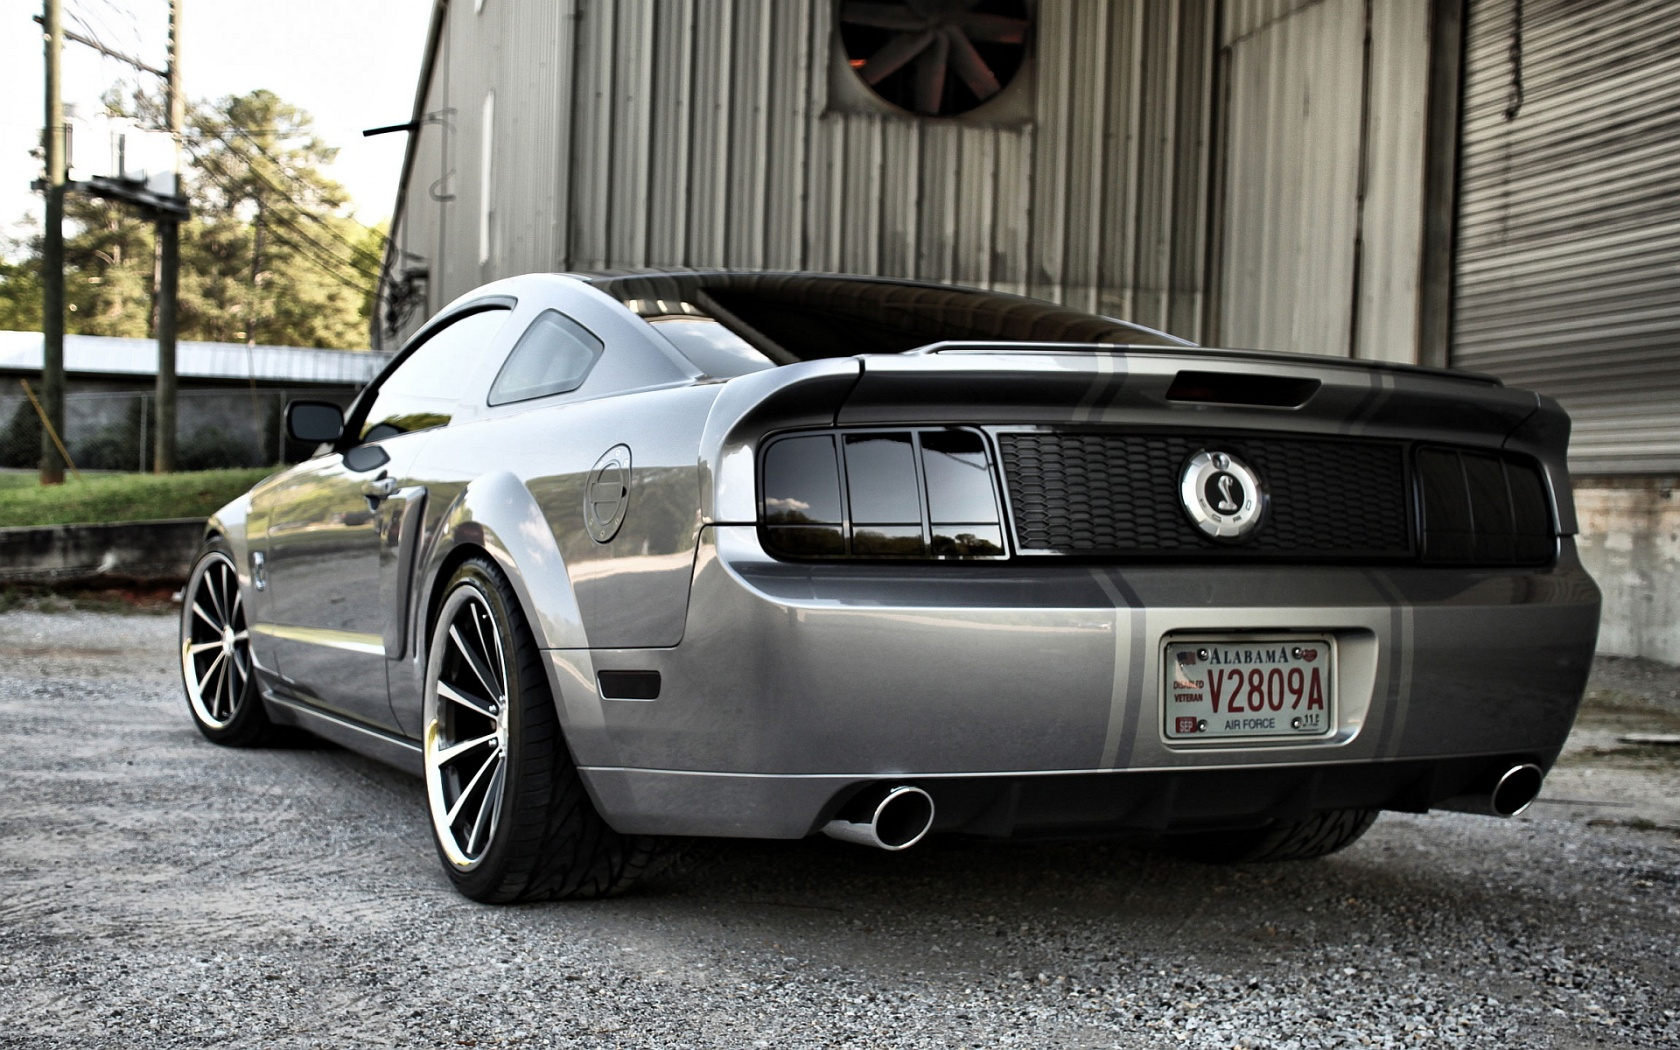 Shelby Wallpaper HD Backgrounds